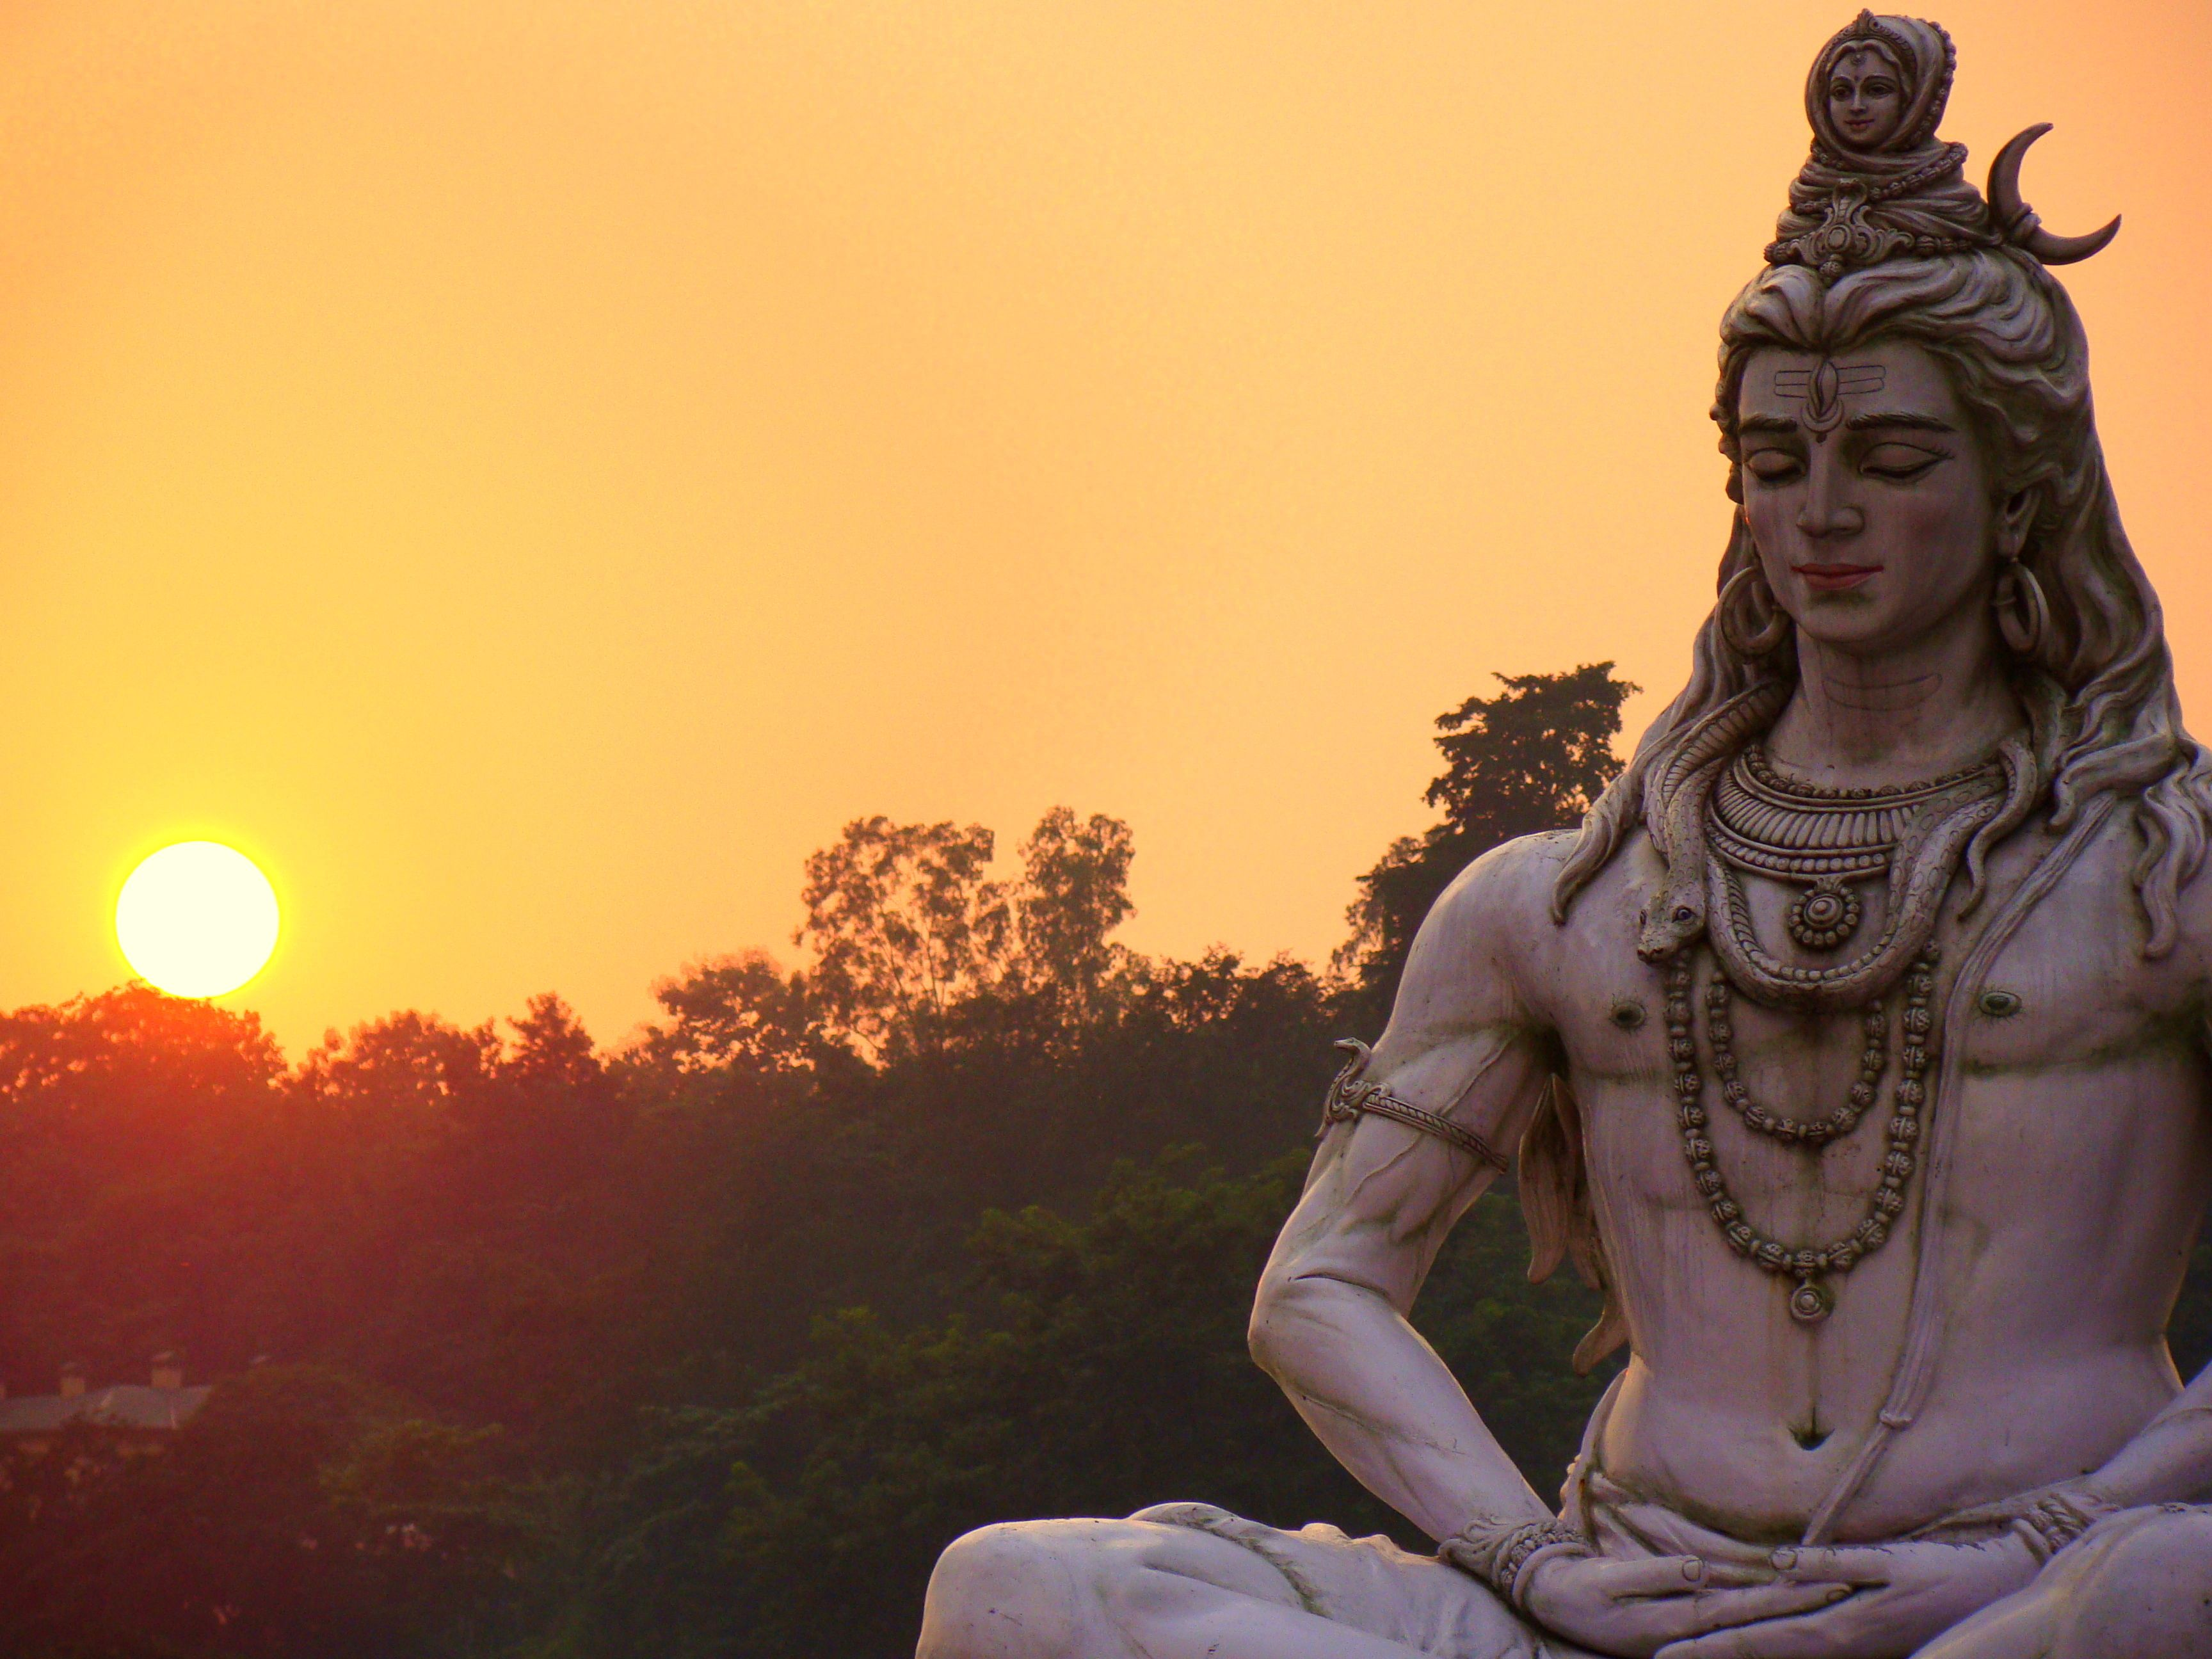 Andhra Temples Lord Shiva Wallpaper: Lord Shiva And The Sunset In Rishikesh.